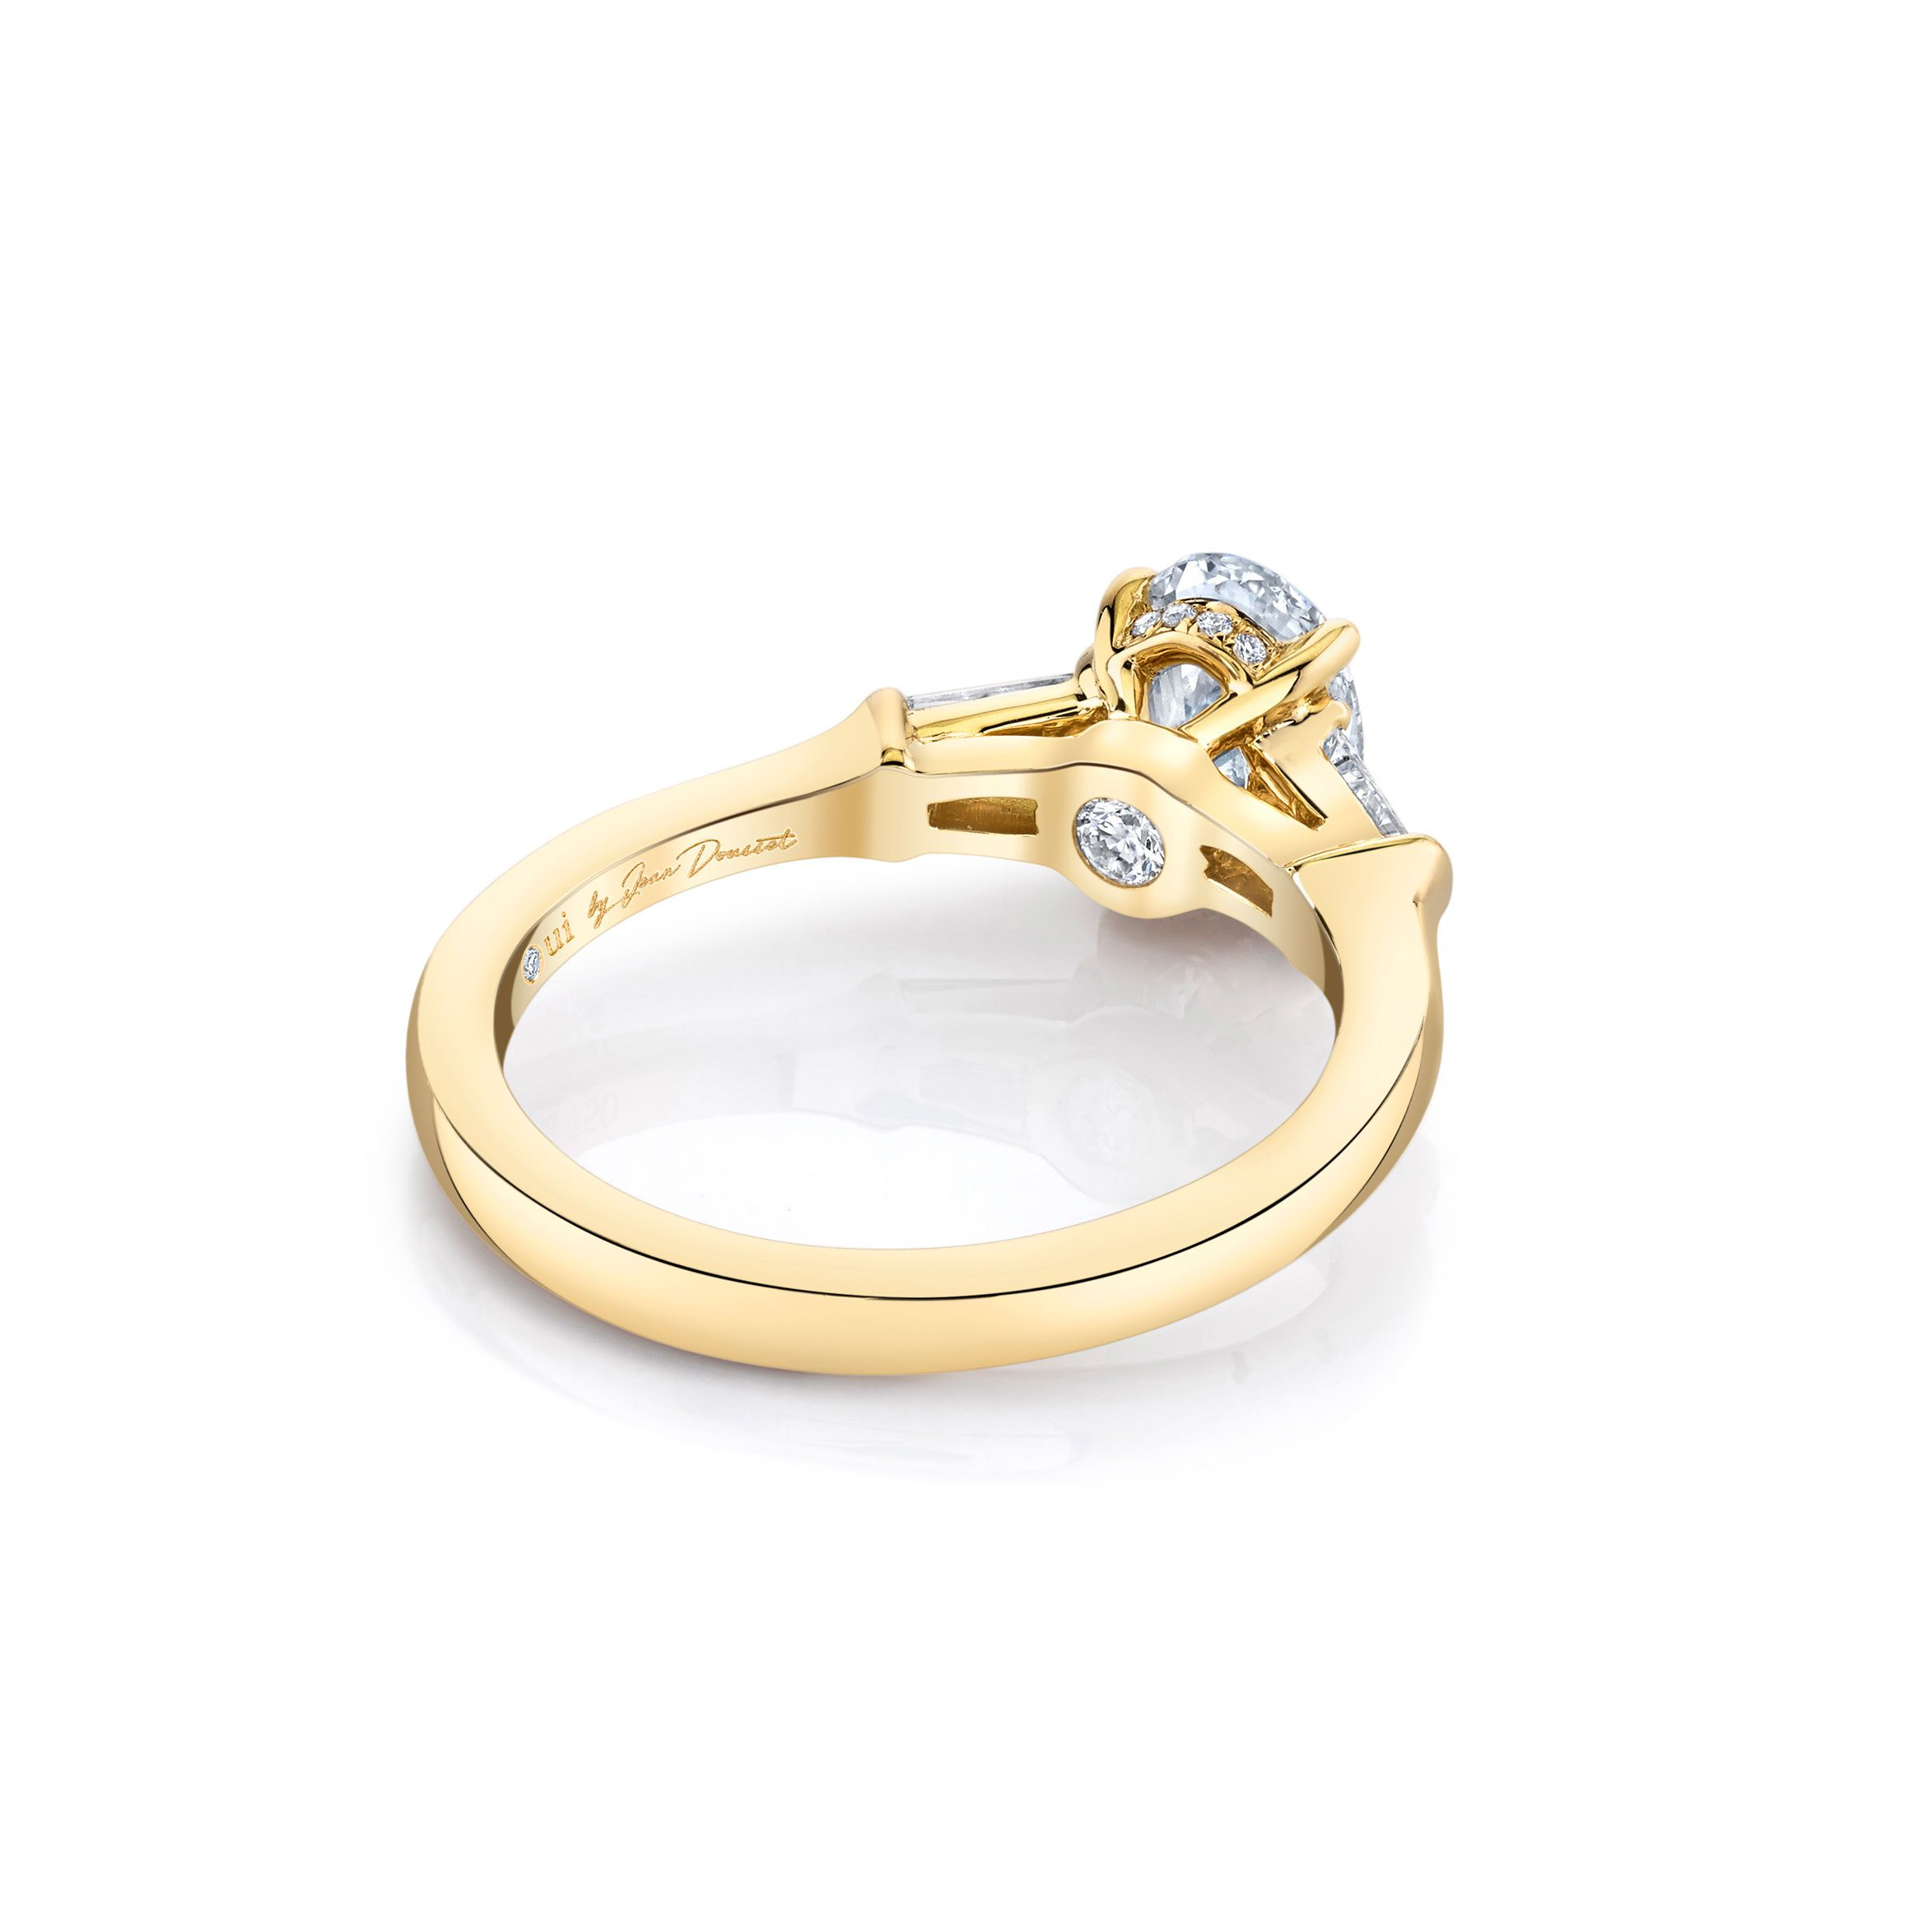 Claire Oval Three Stone Engagement Ring with tapered baguette diamond side stones in 18k Yellow Gold Back View by Oui by Jean Dousset